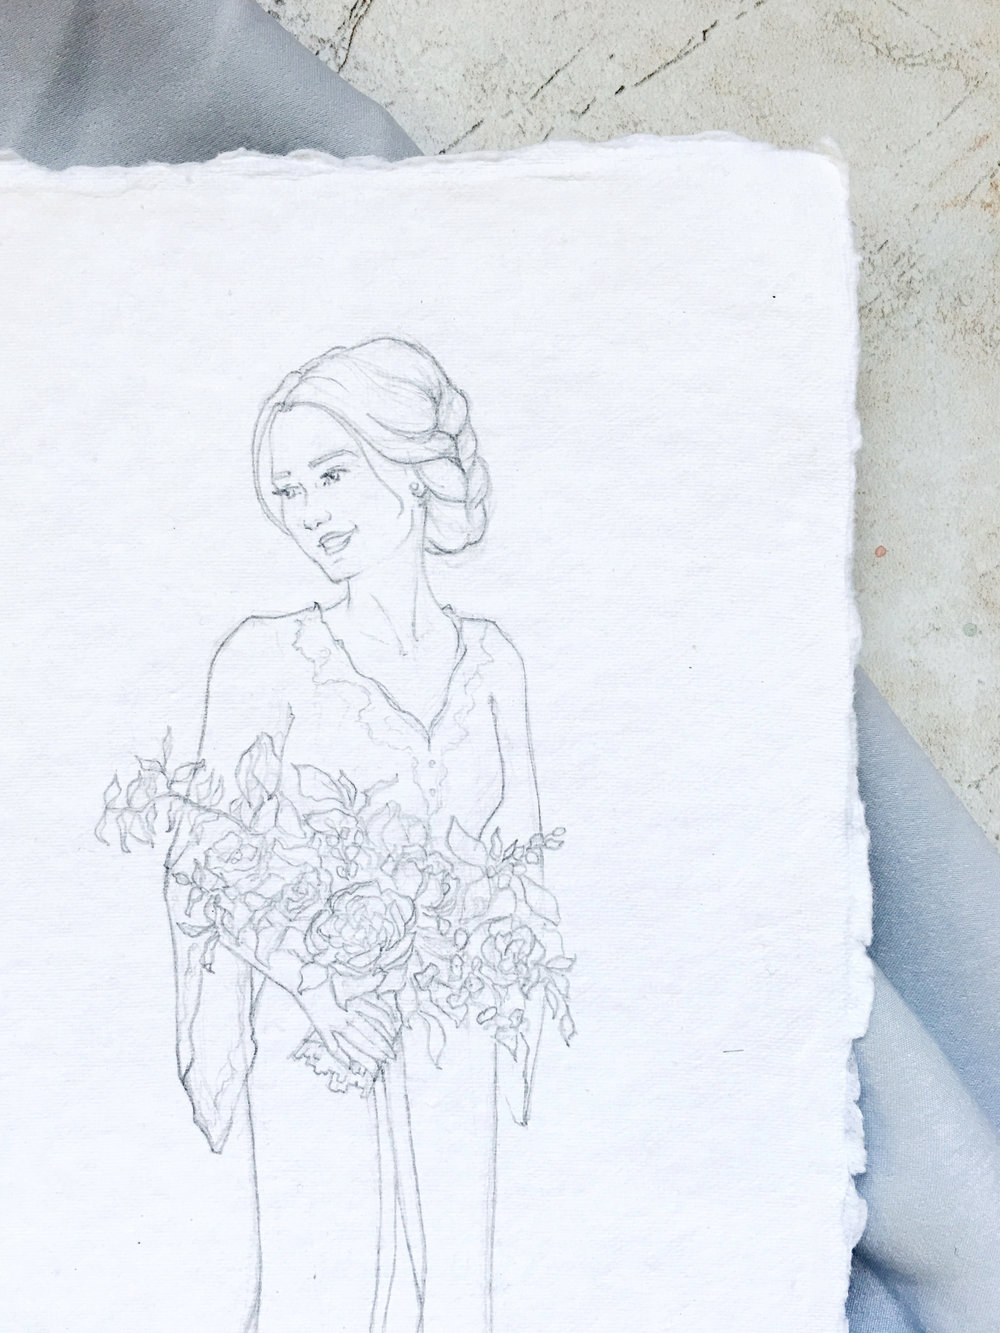 Custom bridal portrait sketch. Fine art bridal portrait on handmade paper. #customportrait #portraitillustration #blusheddesign #portraitsketch